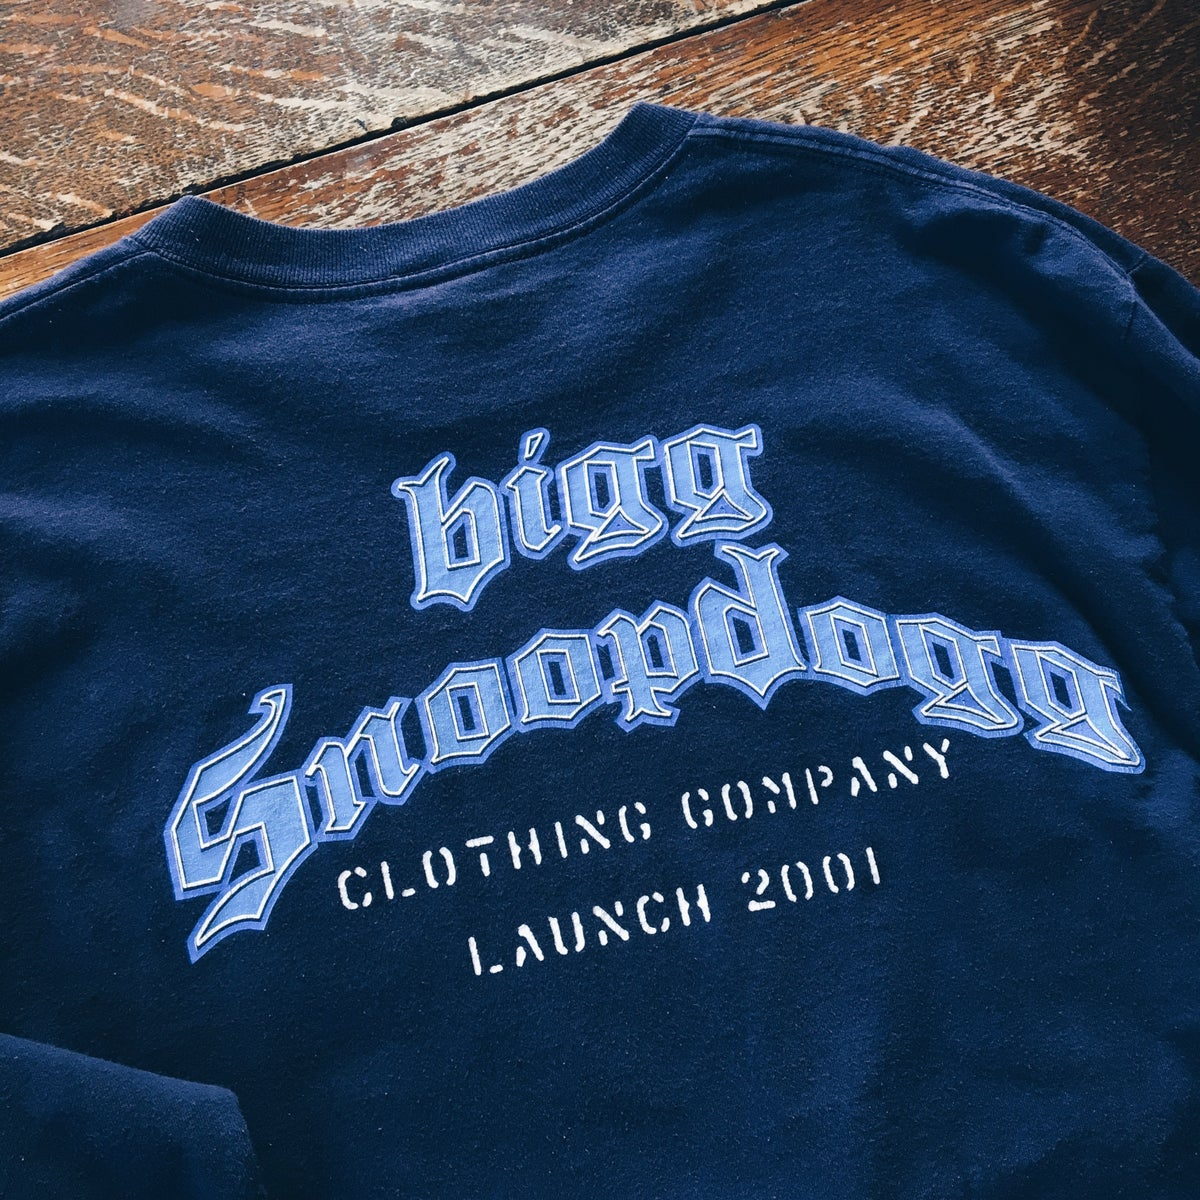 Image of Original 2001 Snoop Dogg Tha Last Meal Promo Tee.